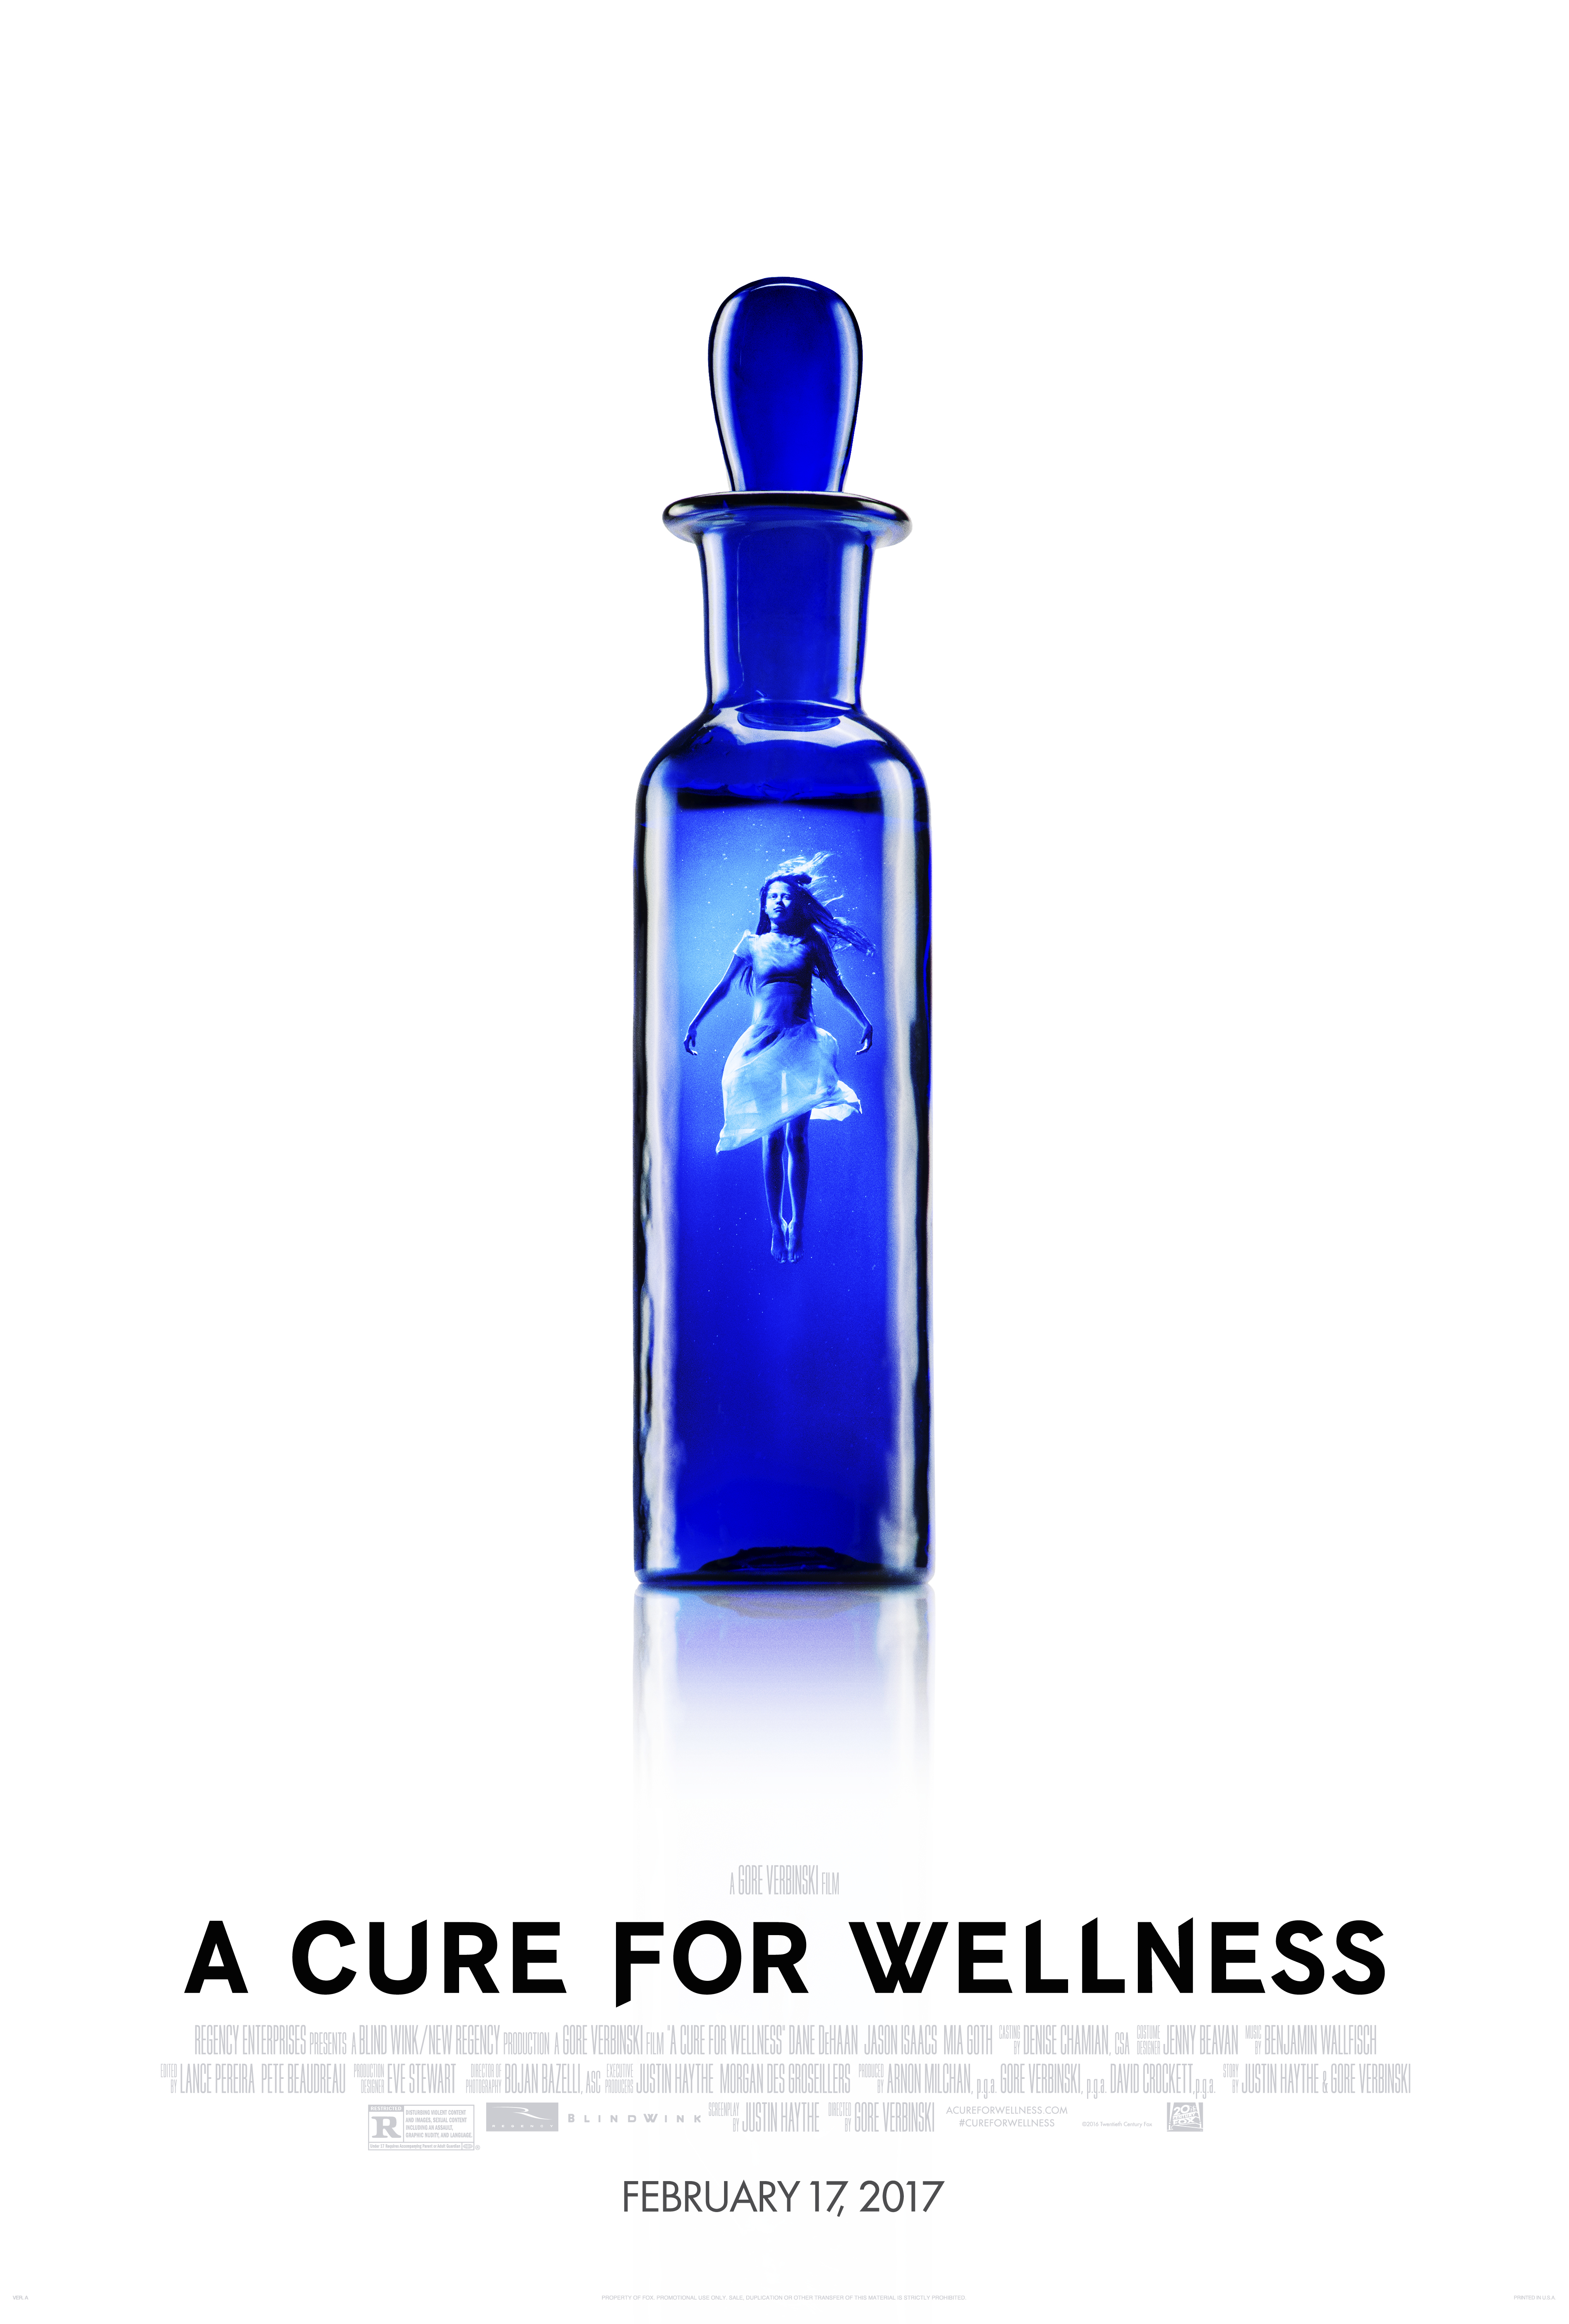 22102016_a_cure_for_wellness_poster